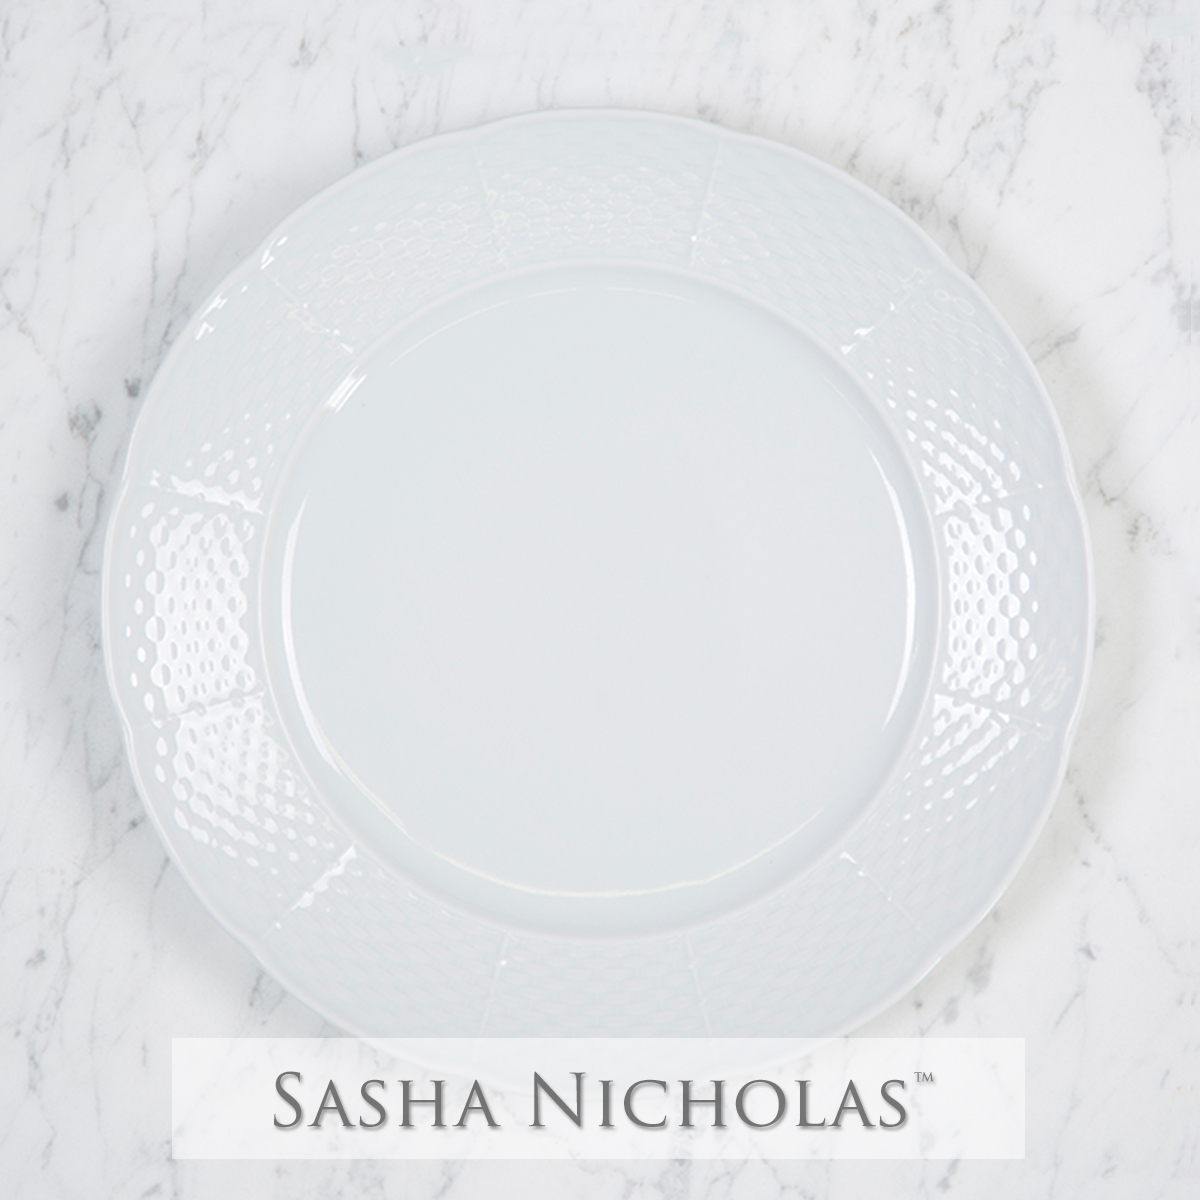 A beautiful addition to your dinnerware collection and to adorn your tablescapes with. It makes the perfect gift for your wedding registry and has the option to include an inscription on back. Choose from their signature font styles or use a custom monogram or crest of your choice! | Sasha Nicholasäó»s white porcelain weave dinner plate